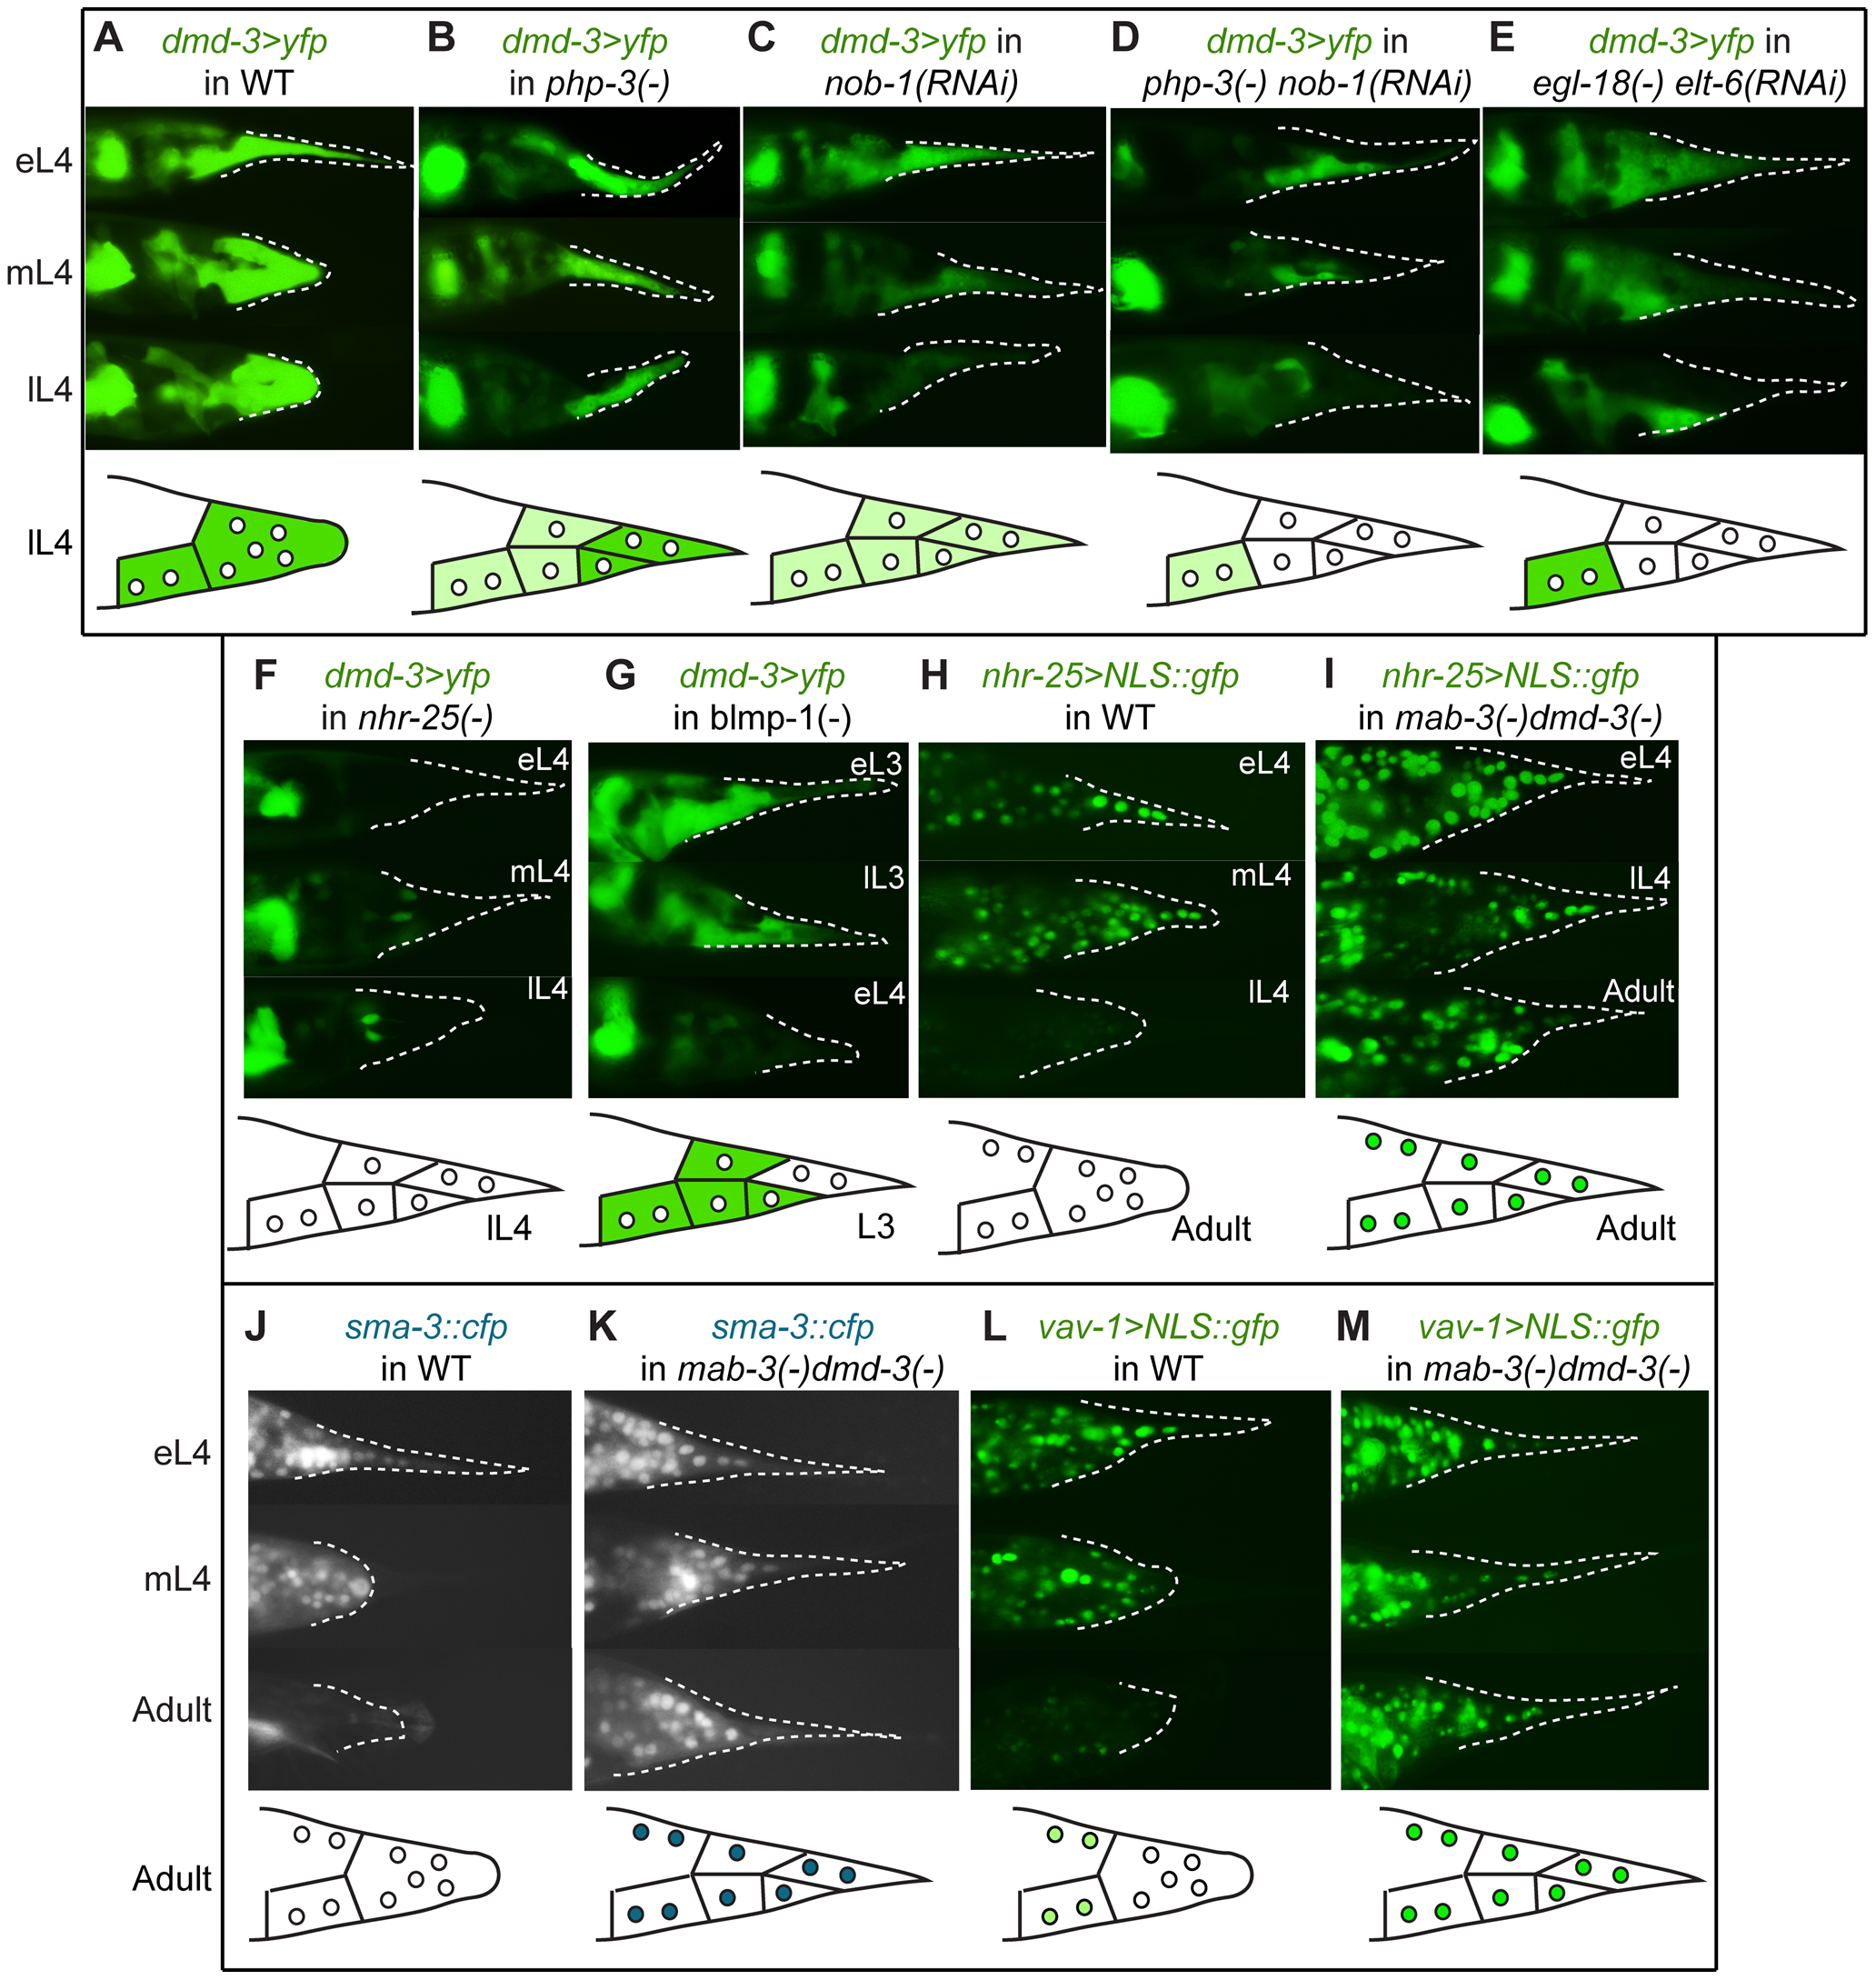 Expression epistasis experiments to test interactions between key regulatory genes.